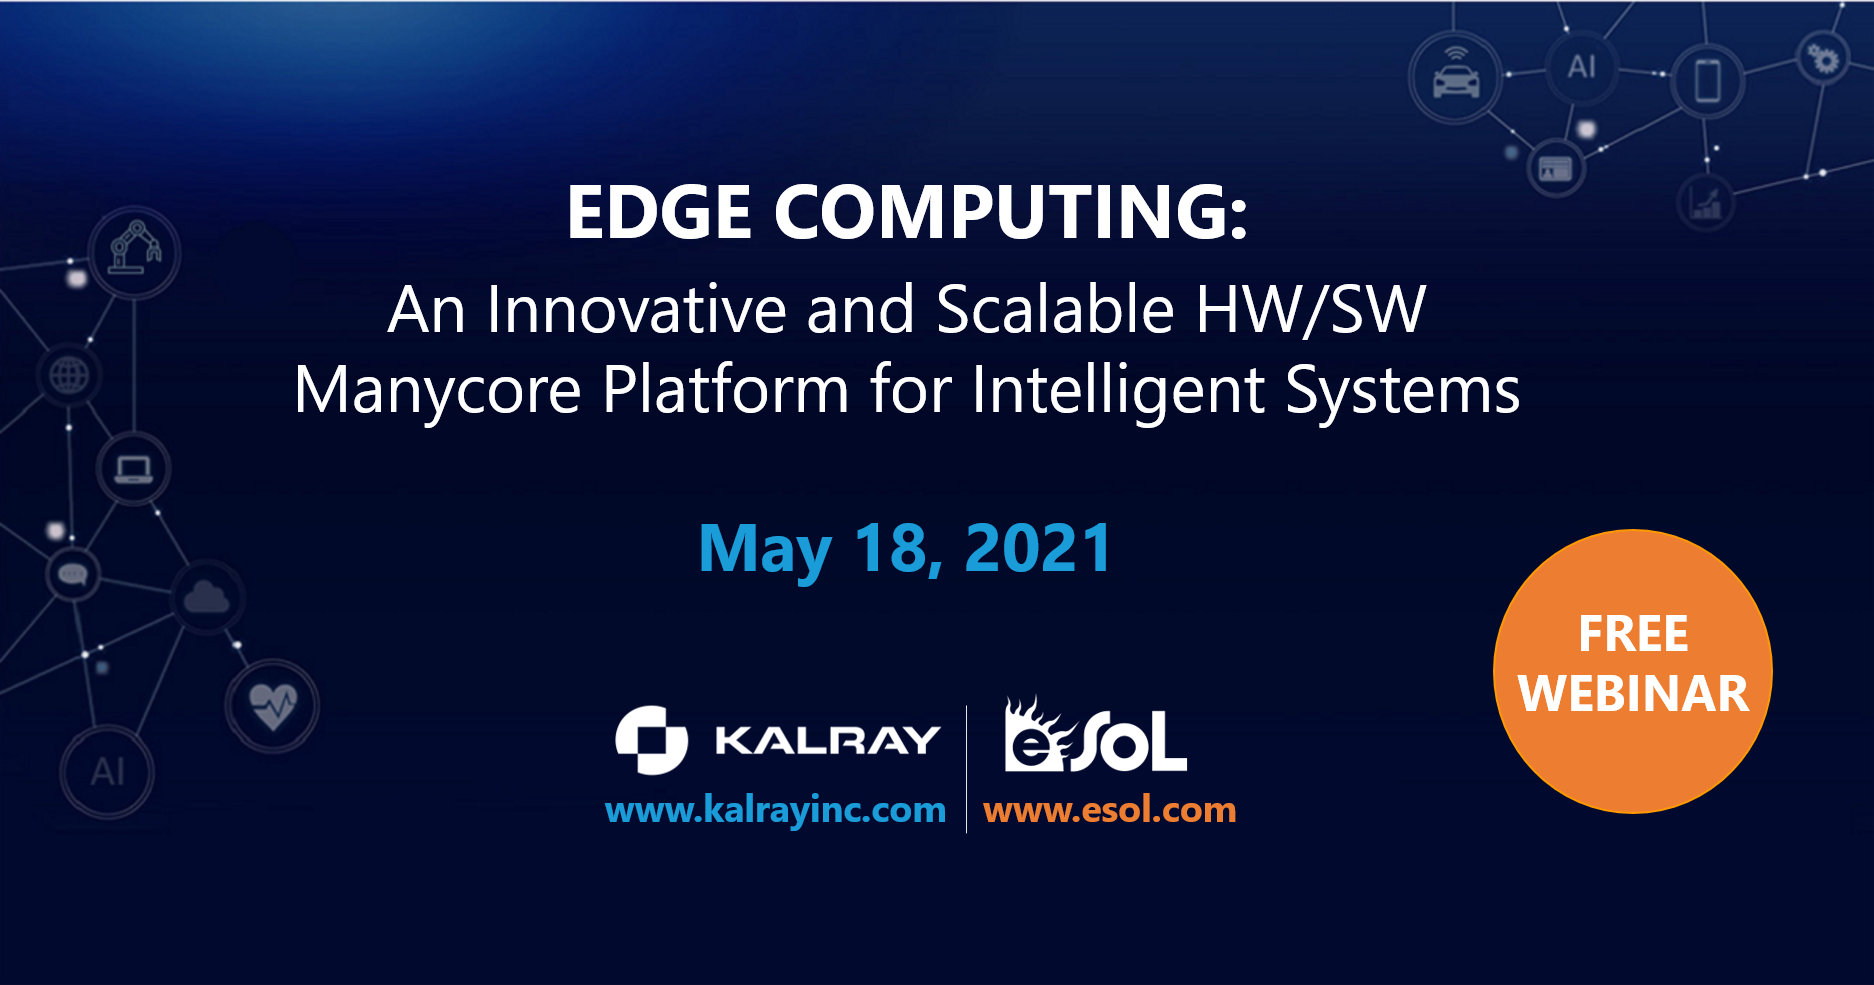 Edge Computing: An Innovative and Scalable HW/SW Manycore Platform for Intelligent Systems